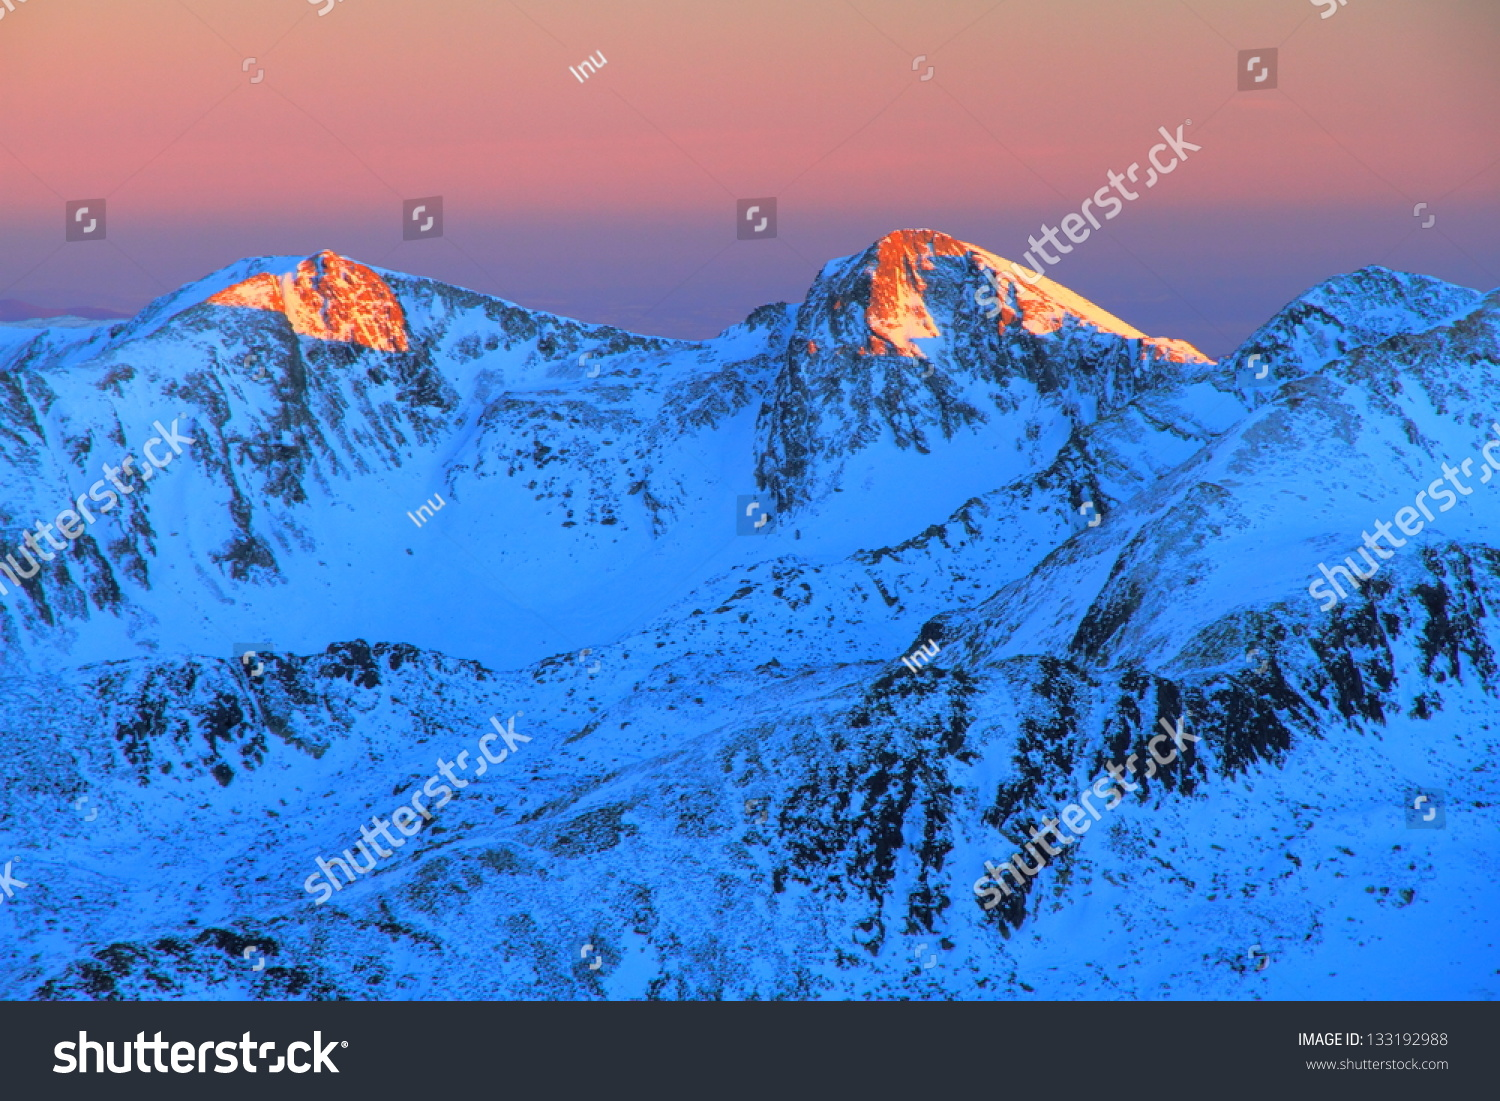 Sunset Over The Snowy Mountains, Romania Stock Photo ... Sunset Over Snowy Mountains